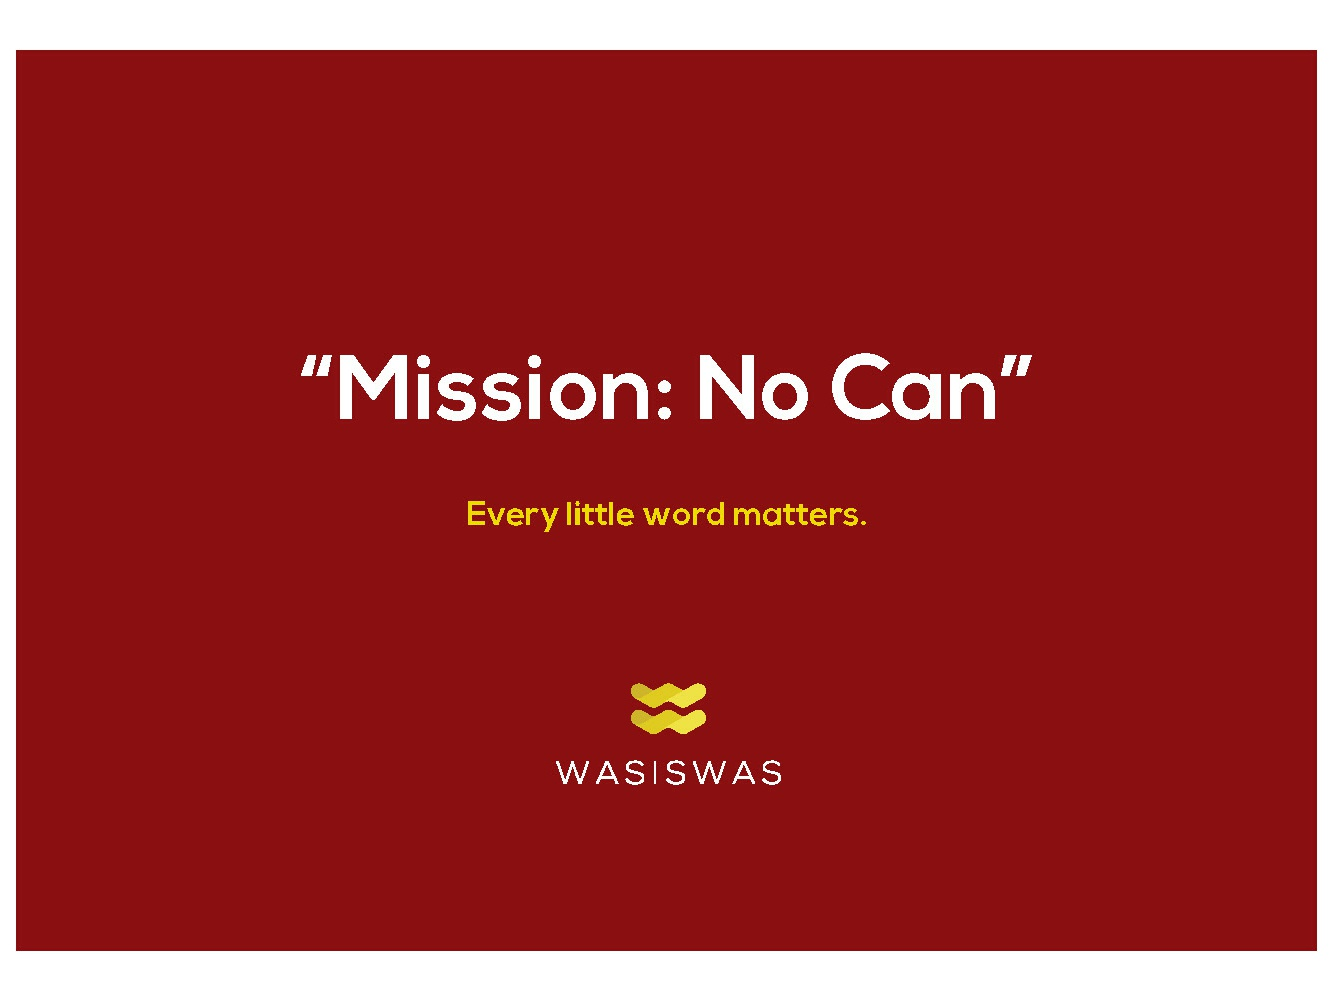 Mission: No Can Postcard maroon idioms saying wasiswas hawaii writer copywriter words postcard agency